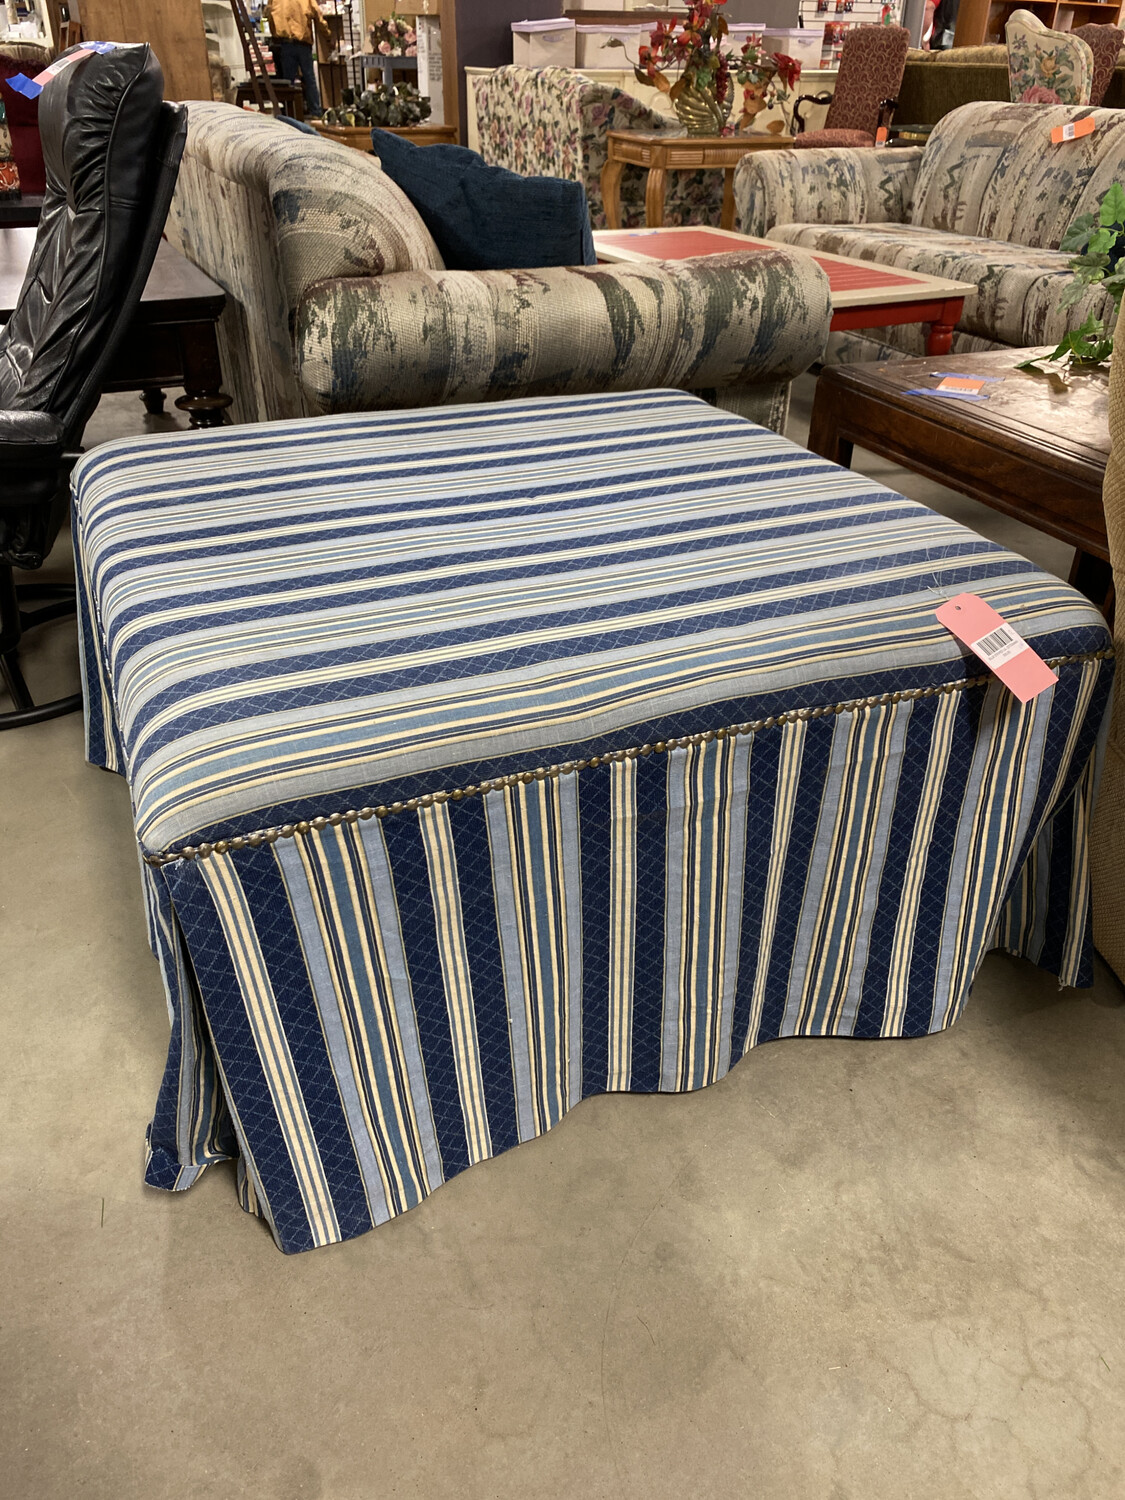 BLUE STRIPED LG. OTTOMAN